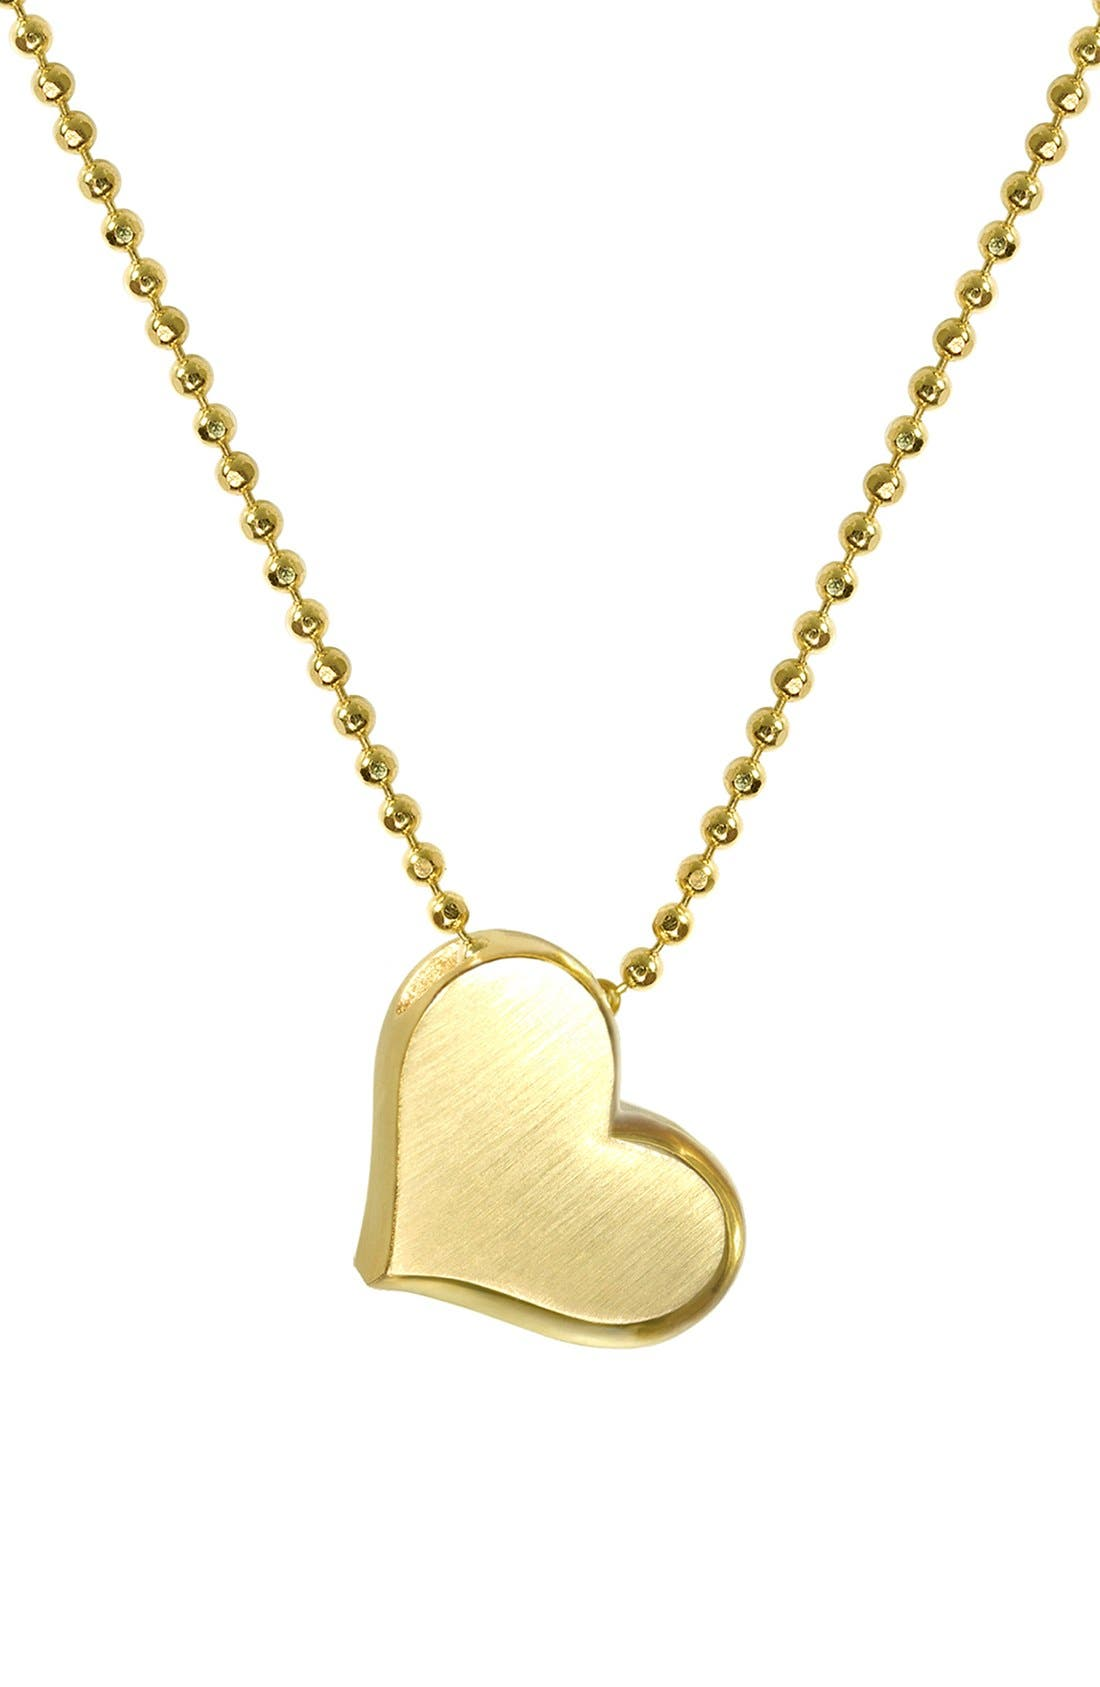 Alternate Image 1 Selected - Alex Woo 'Little Princess' Heart Pendant Necklace